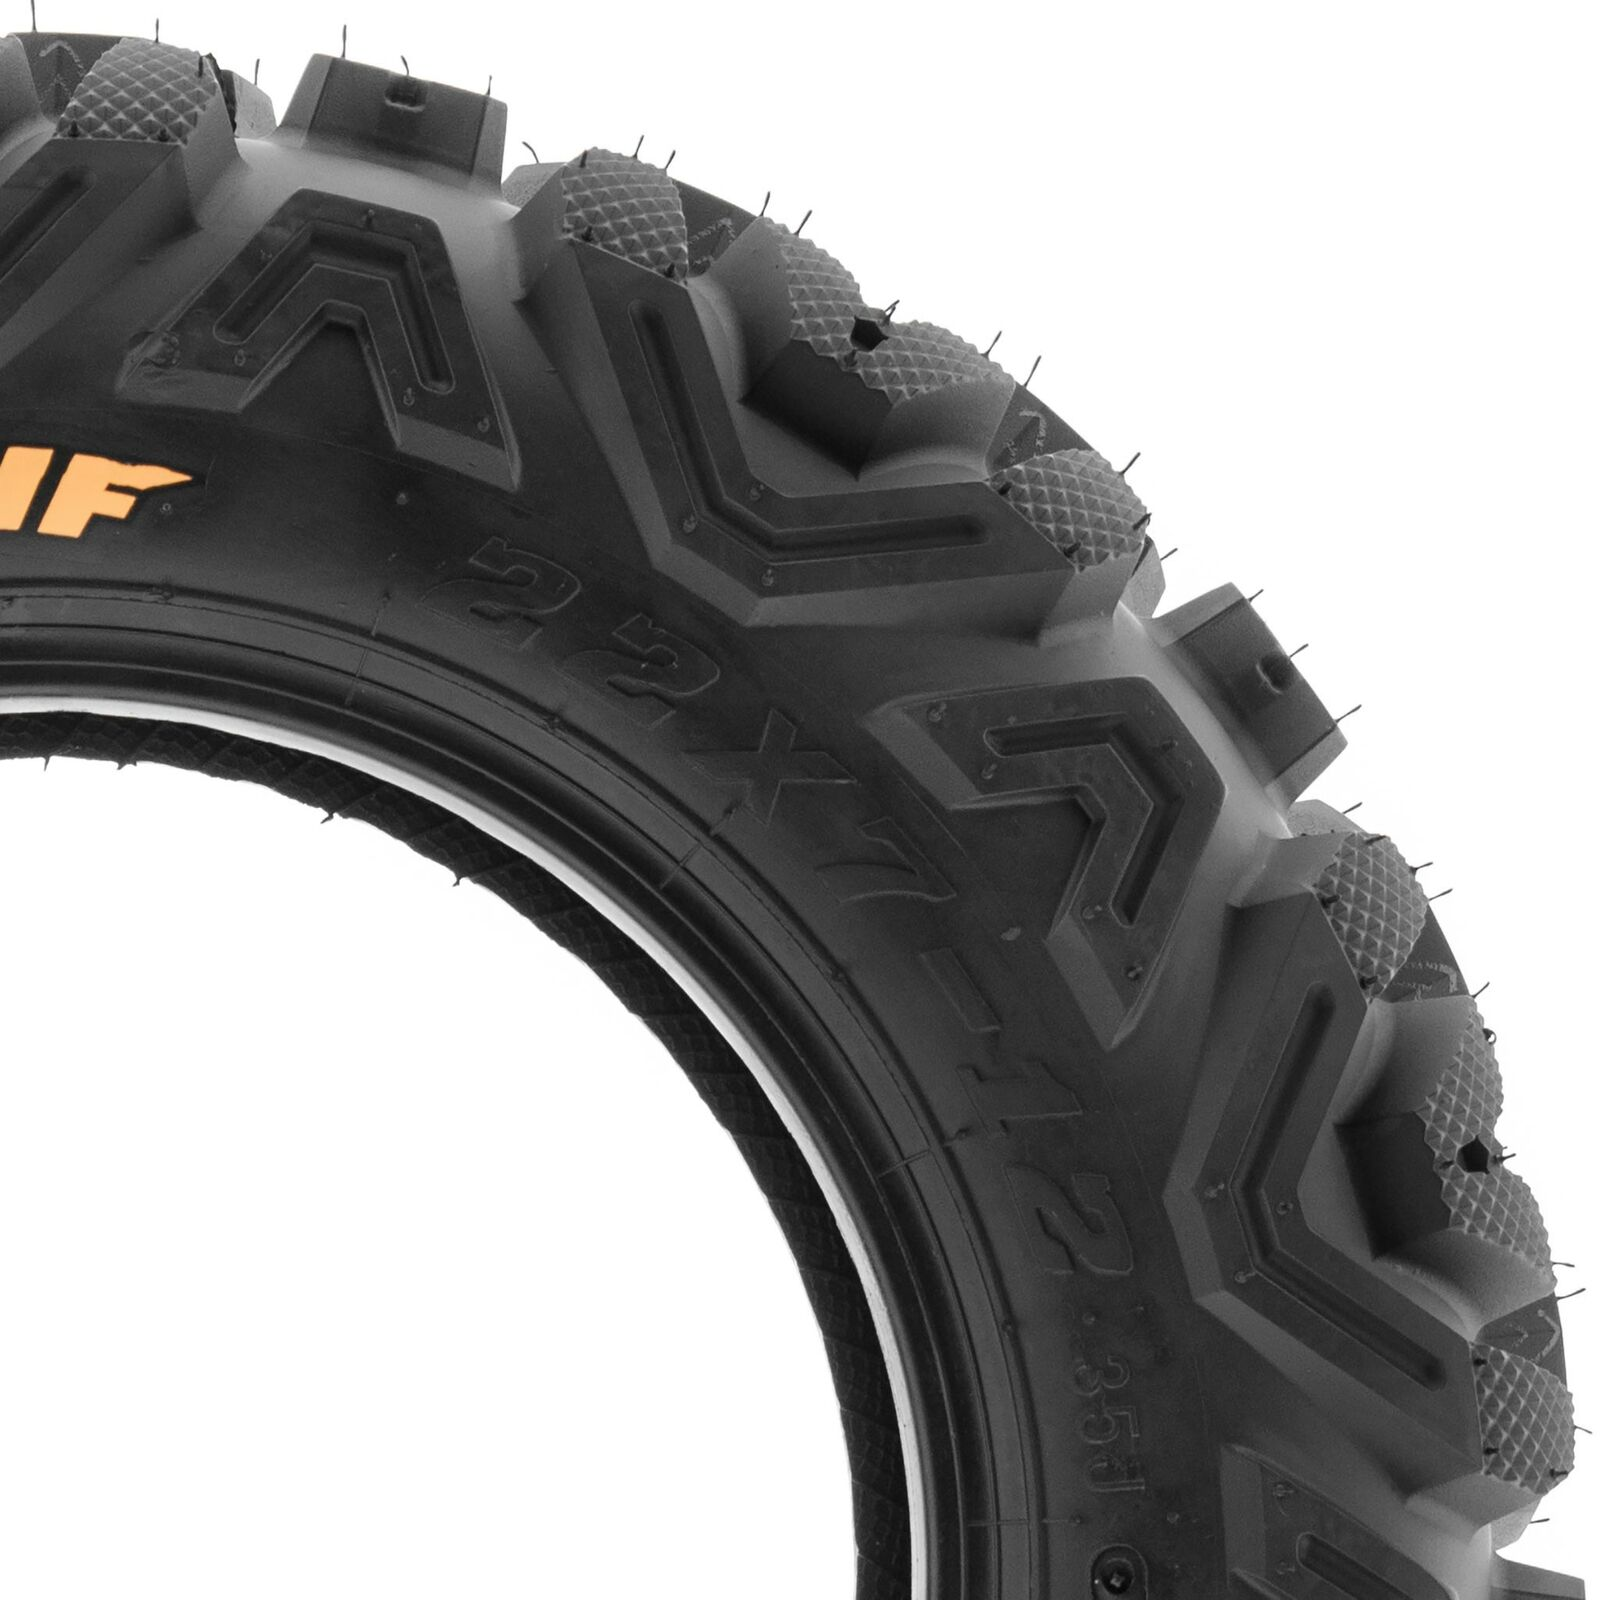 SET 4 20X10-9 21X7-10 SUZUKI LTZ 400 MASSFX QUAD SPORT ATV TIRES